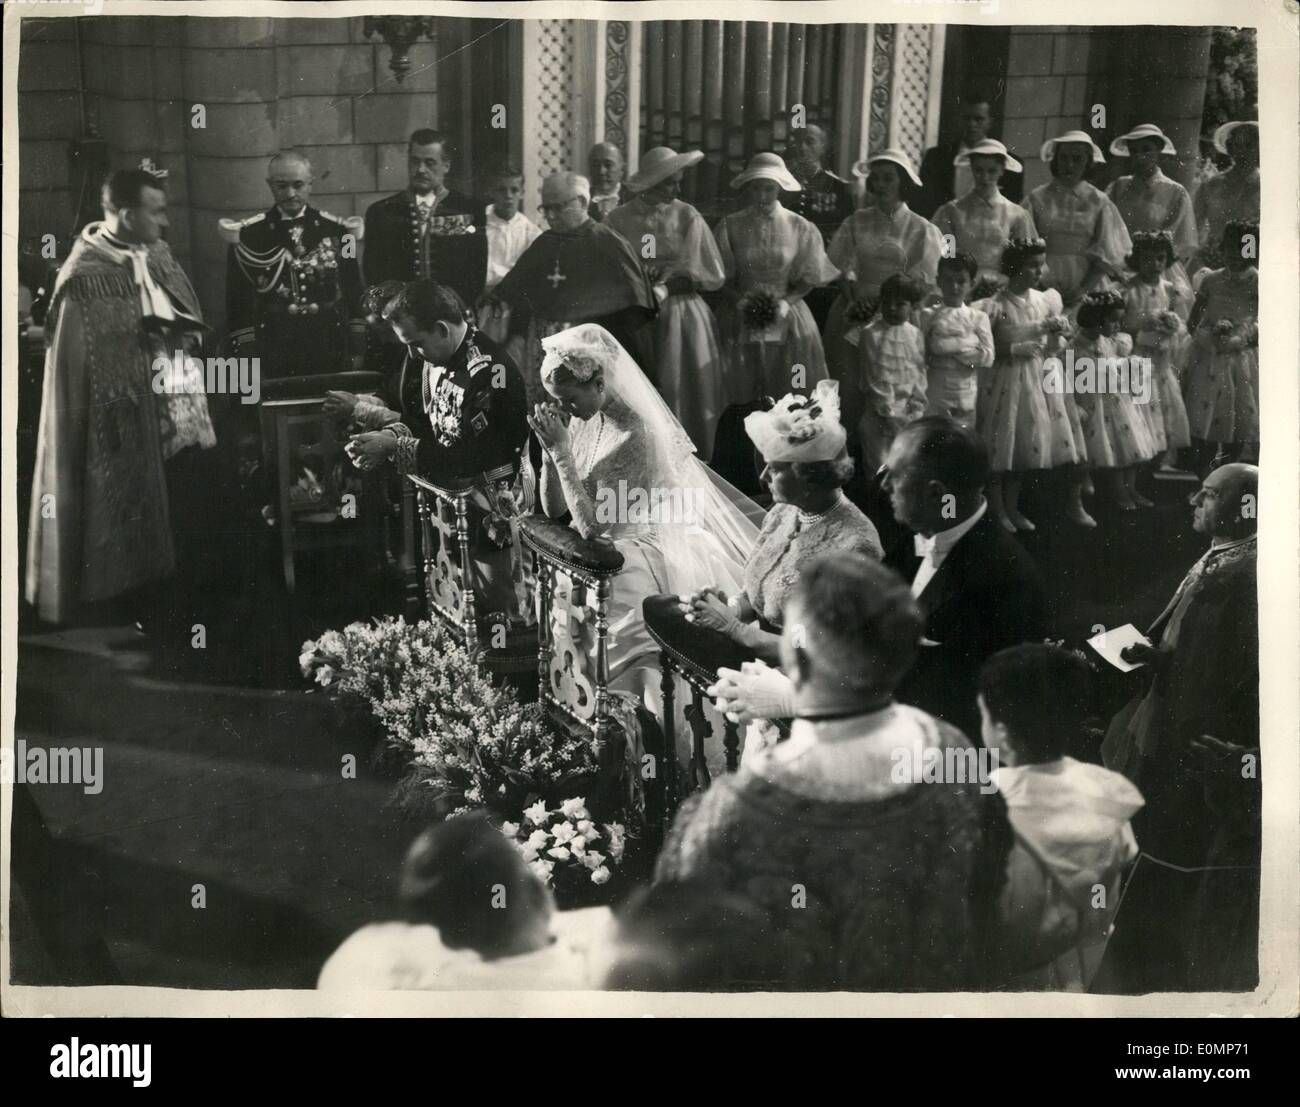 Apr. 04, 1956 - Prince Rainier Grace Kelly The Bride And Bridegroom Pray: Photo Shows Prince Rainier and Grace Kelly pray - during the wedding ceremony in Monaco Cathedral morning. The Bride Samainds and guests can be seen surrounding them. - Stock Image